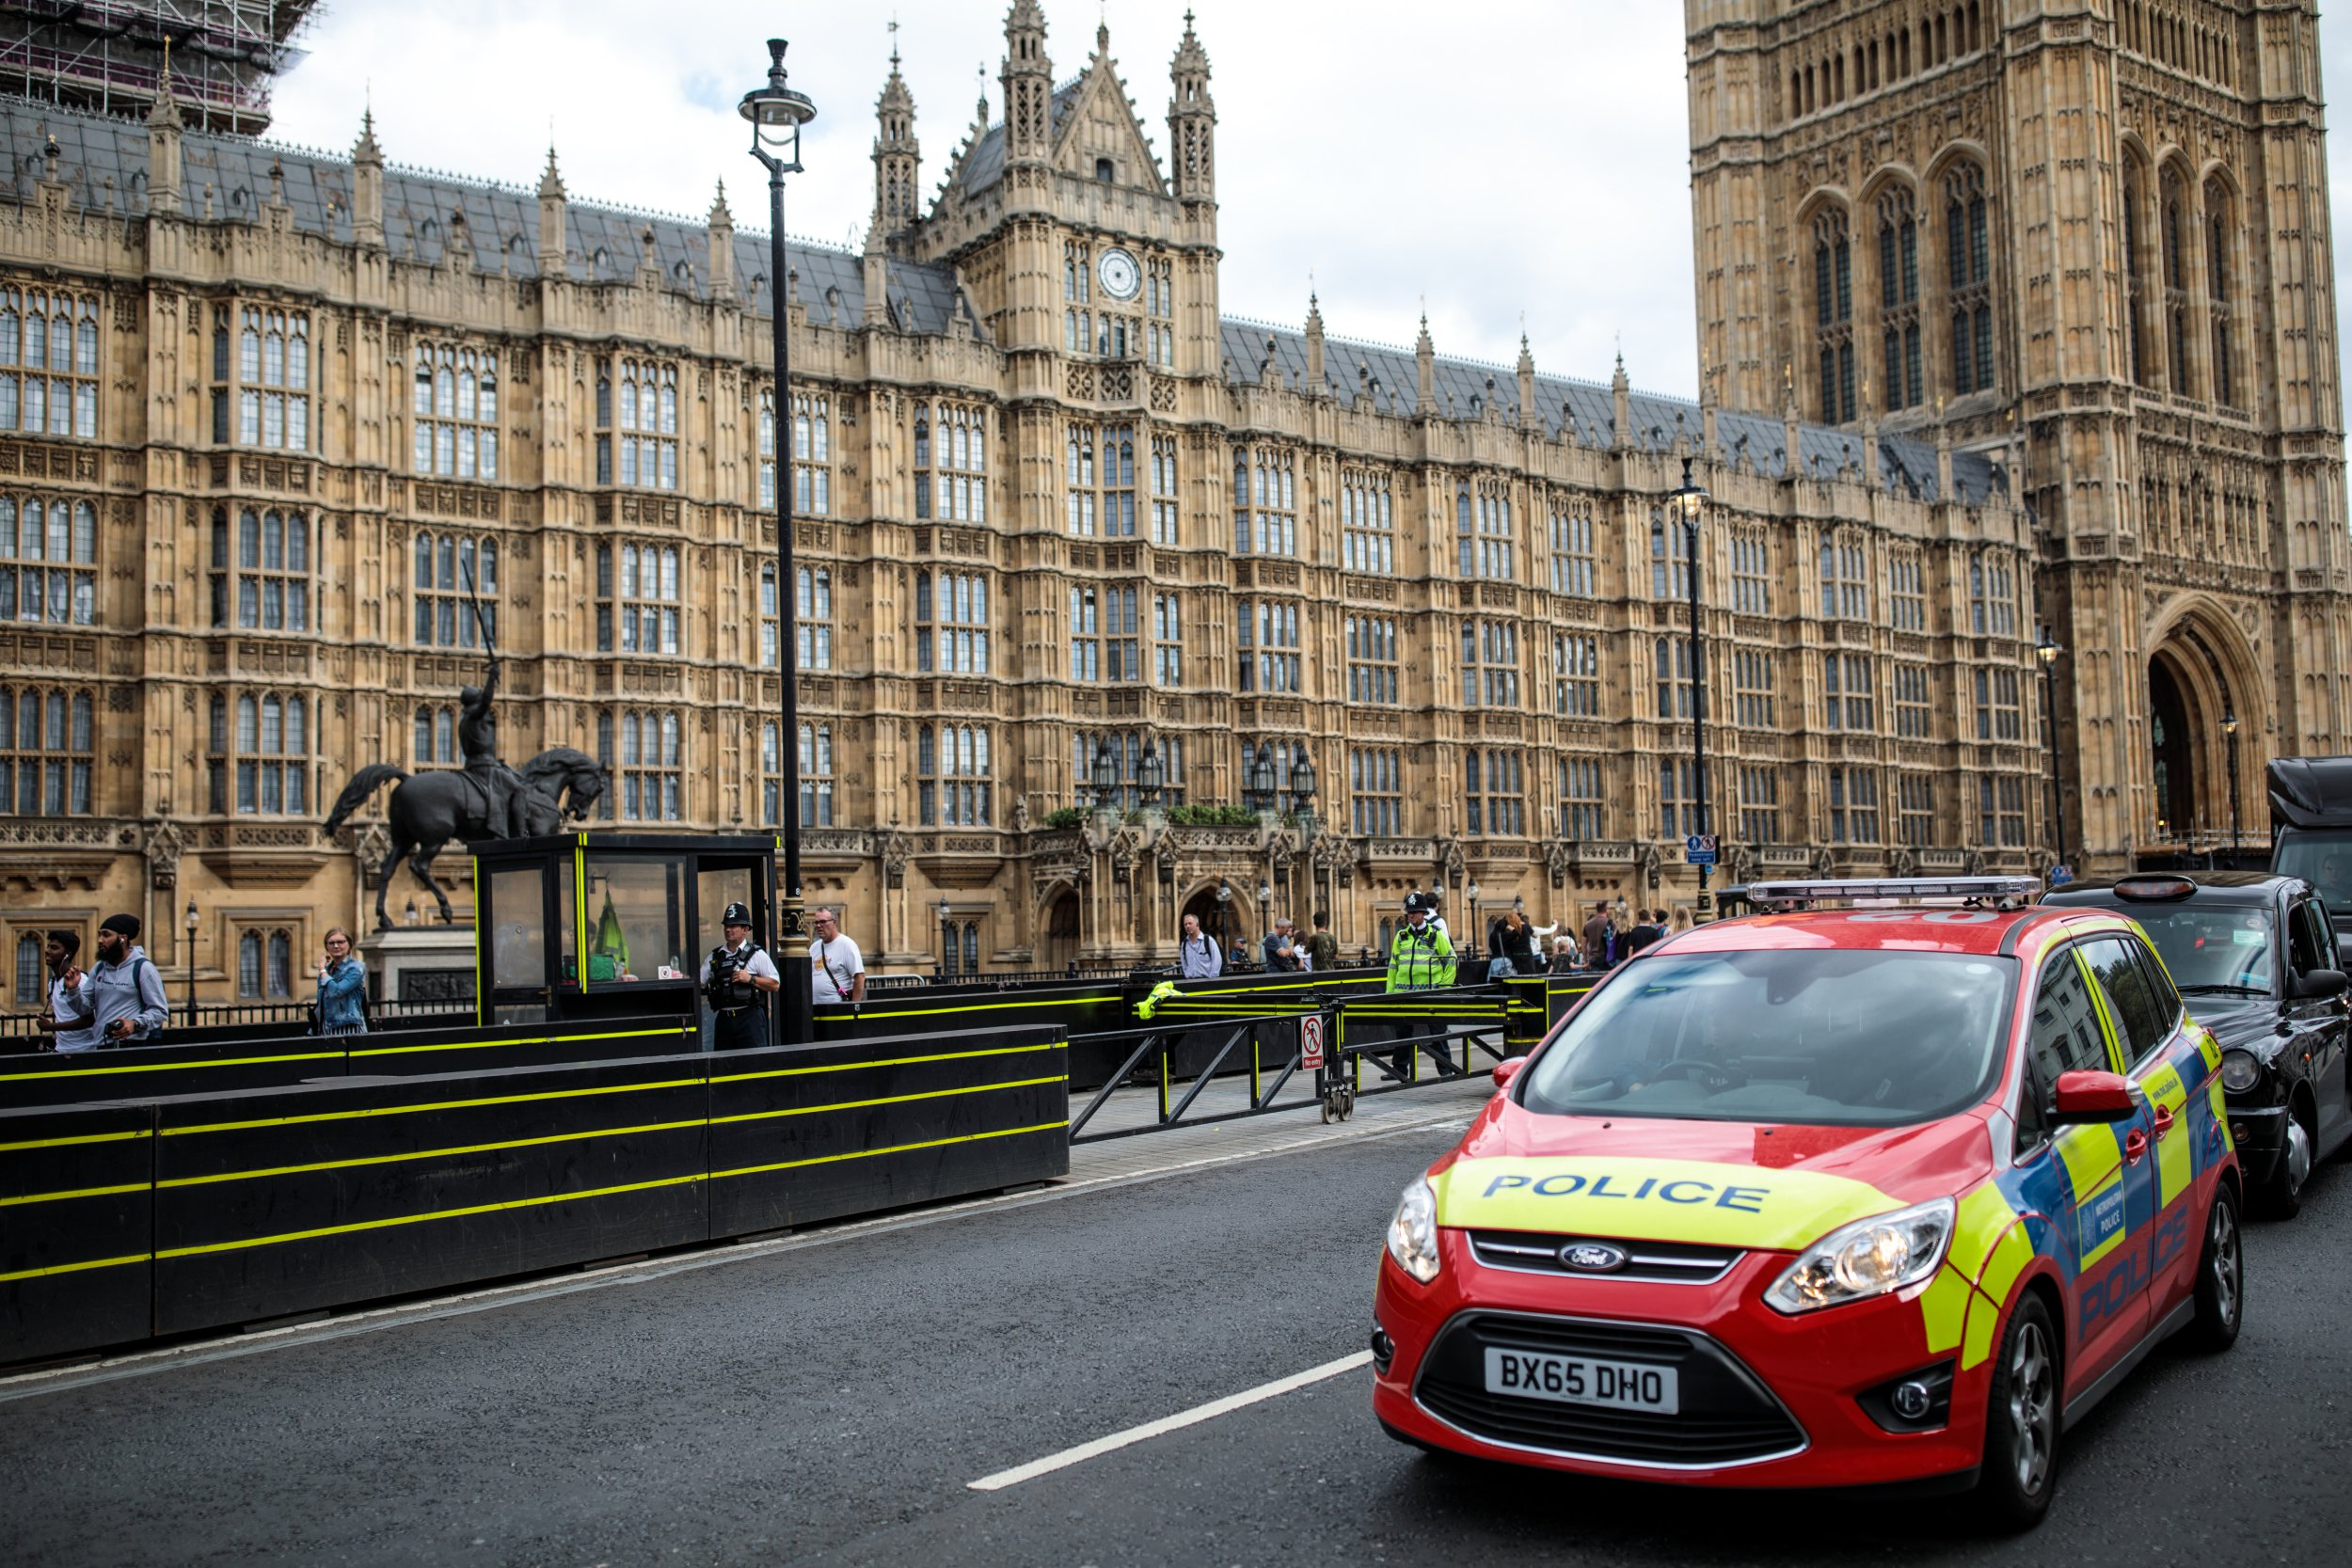 LONDON, ENGLAND - AUGUST 15: A police car drives past the Houses of Parliament following yesterday morning's incident, which is being investigated by terror police on August 15, 2018 in London, England. 29-year-old Salih Khater was named by police today as the man arrested on suspicion of terror offences after he crashed his car outside the Houses of Parliament injuring cyclists and pedestrians. (Photo by Jack Taylor/Getty Images)